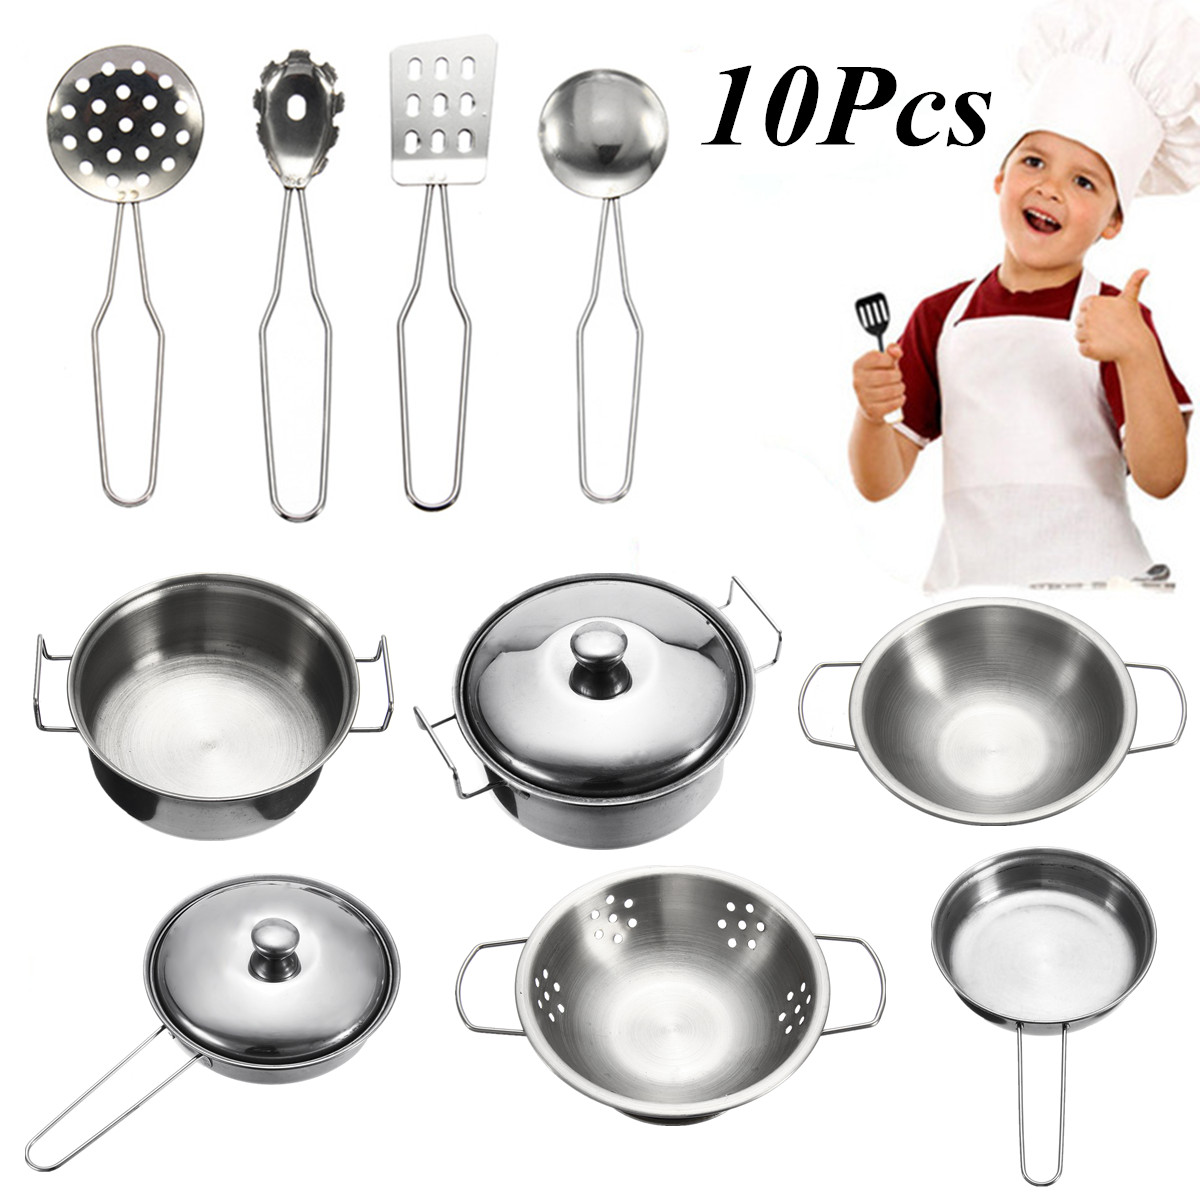 10pcs Mini  Stainless steel  Cookware Kitchen  Cooking Set